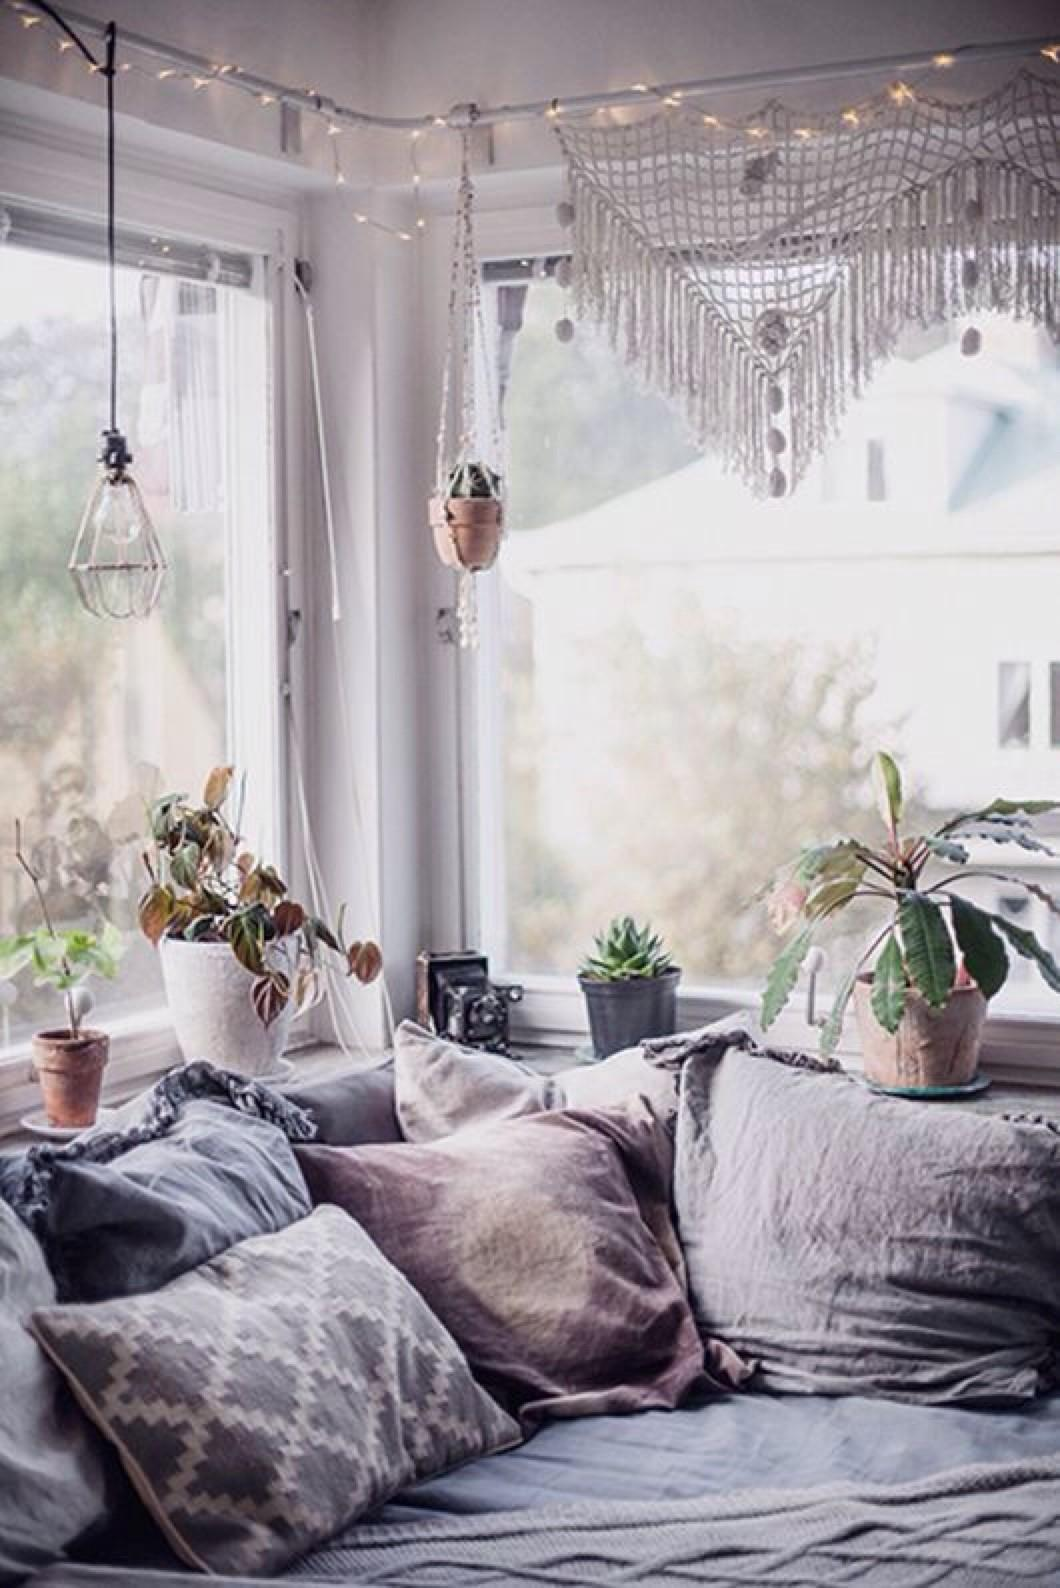 Find Out Make Your Home Cozier More Comfortable